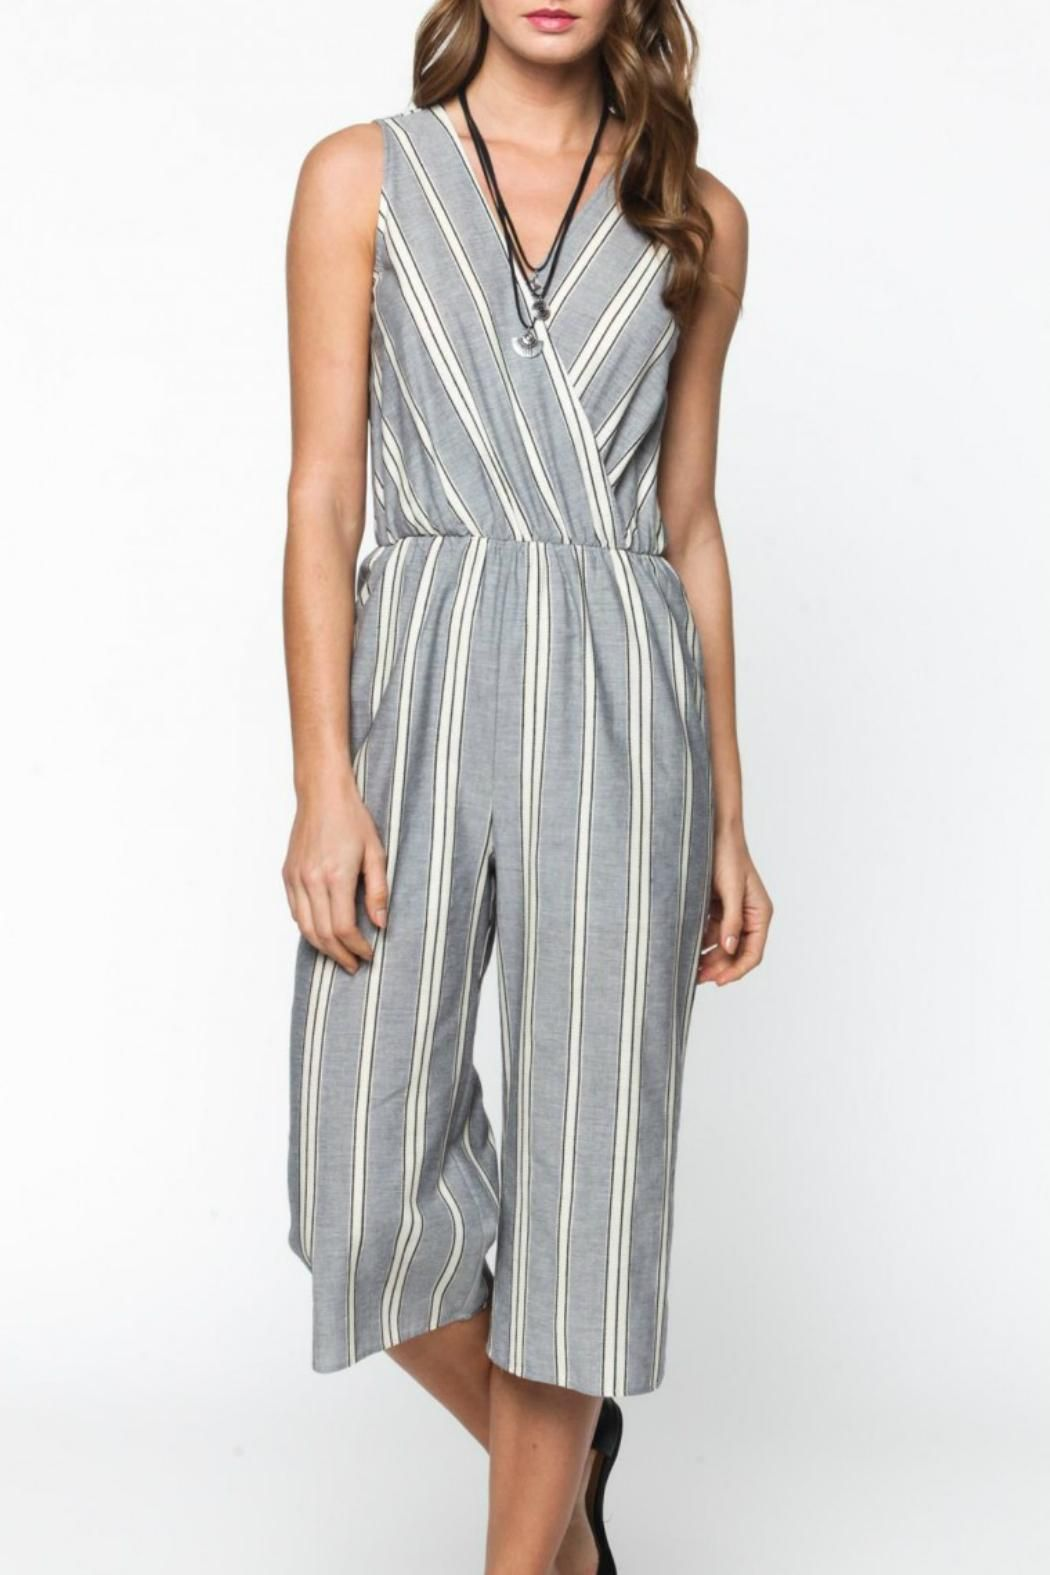 d82035c7bc0 Striped mid--calf length jumpsuit with v neck and back. Striped Capri  Jumpsuit by Everly. Clothing - Jumpsuits   Rompers - Jumpsuits Texas